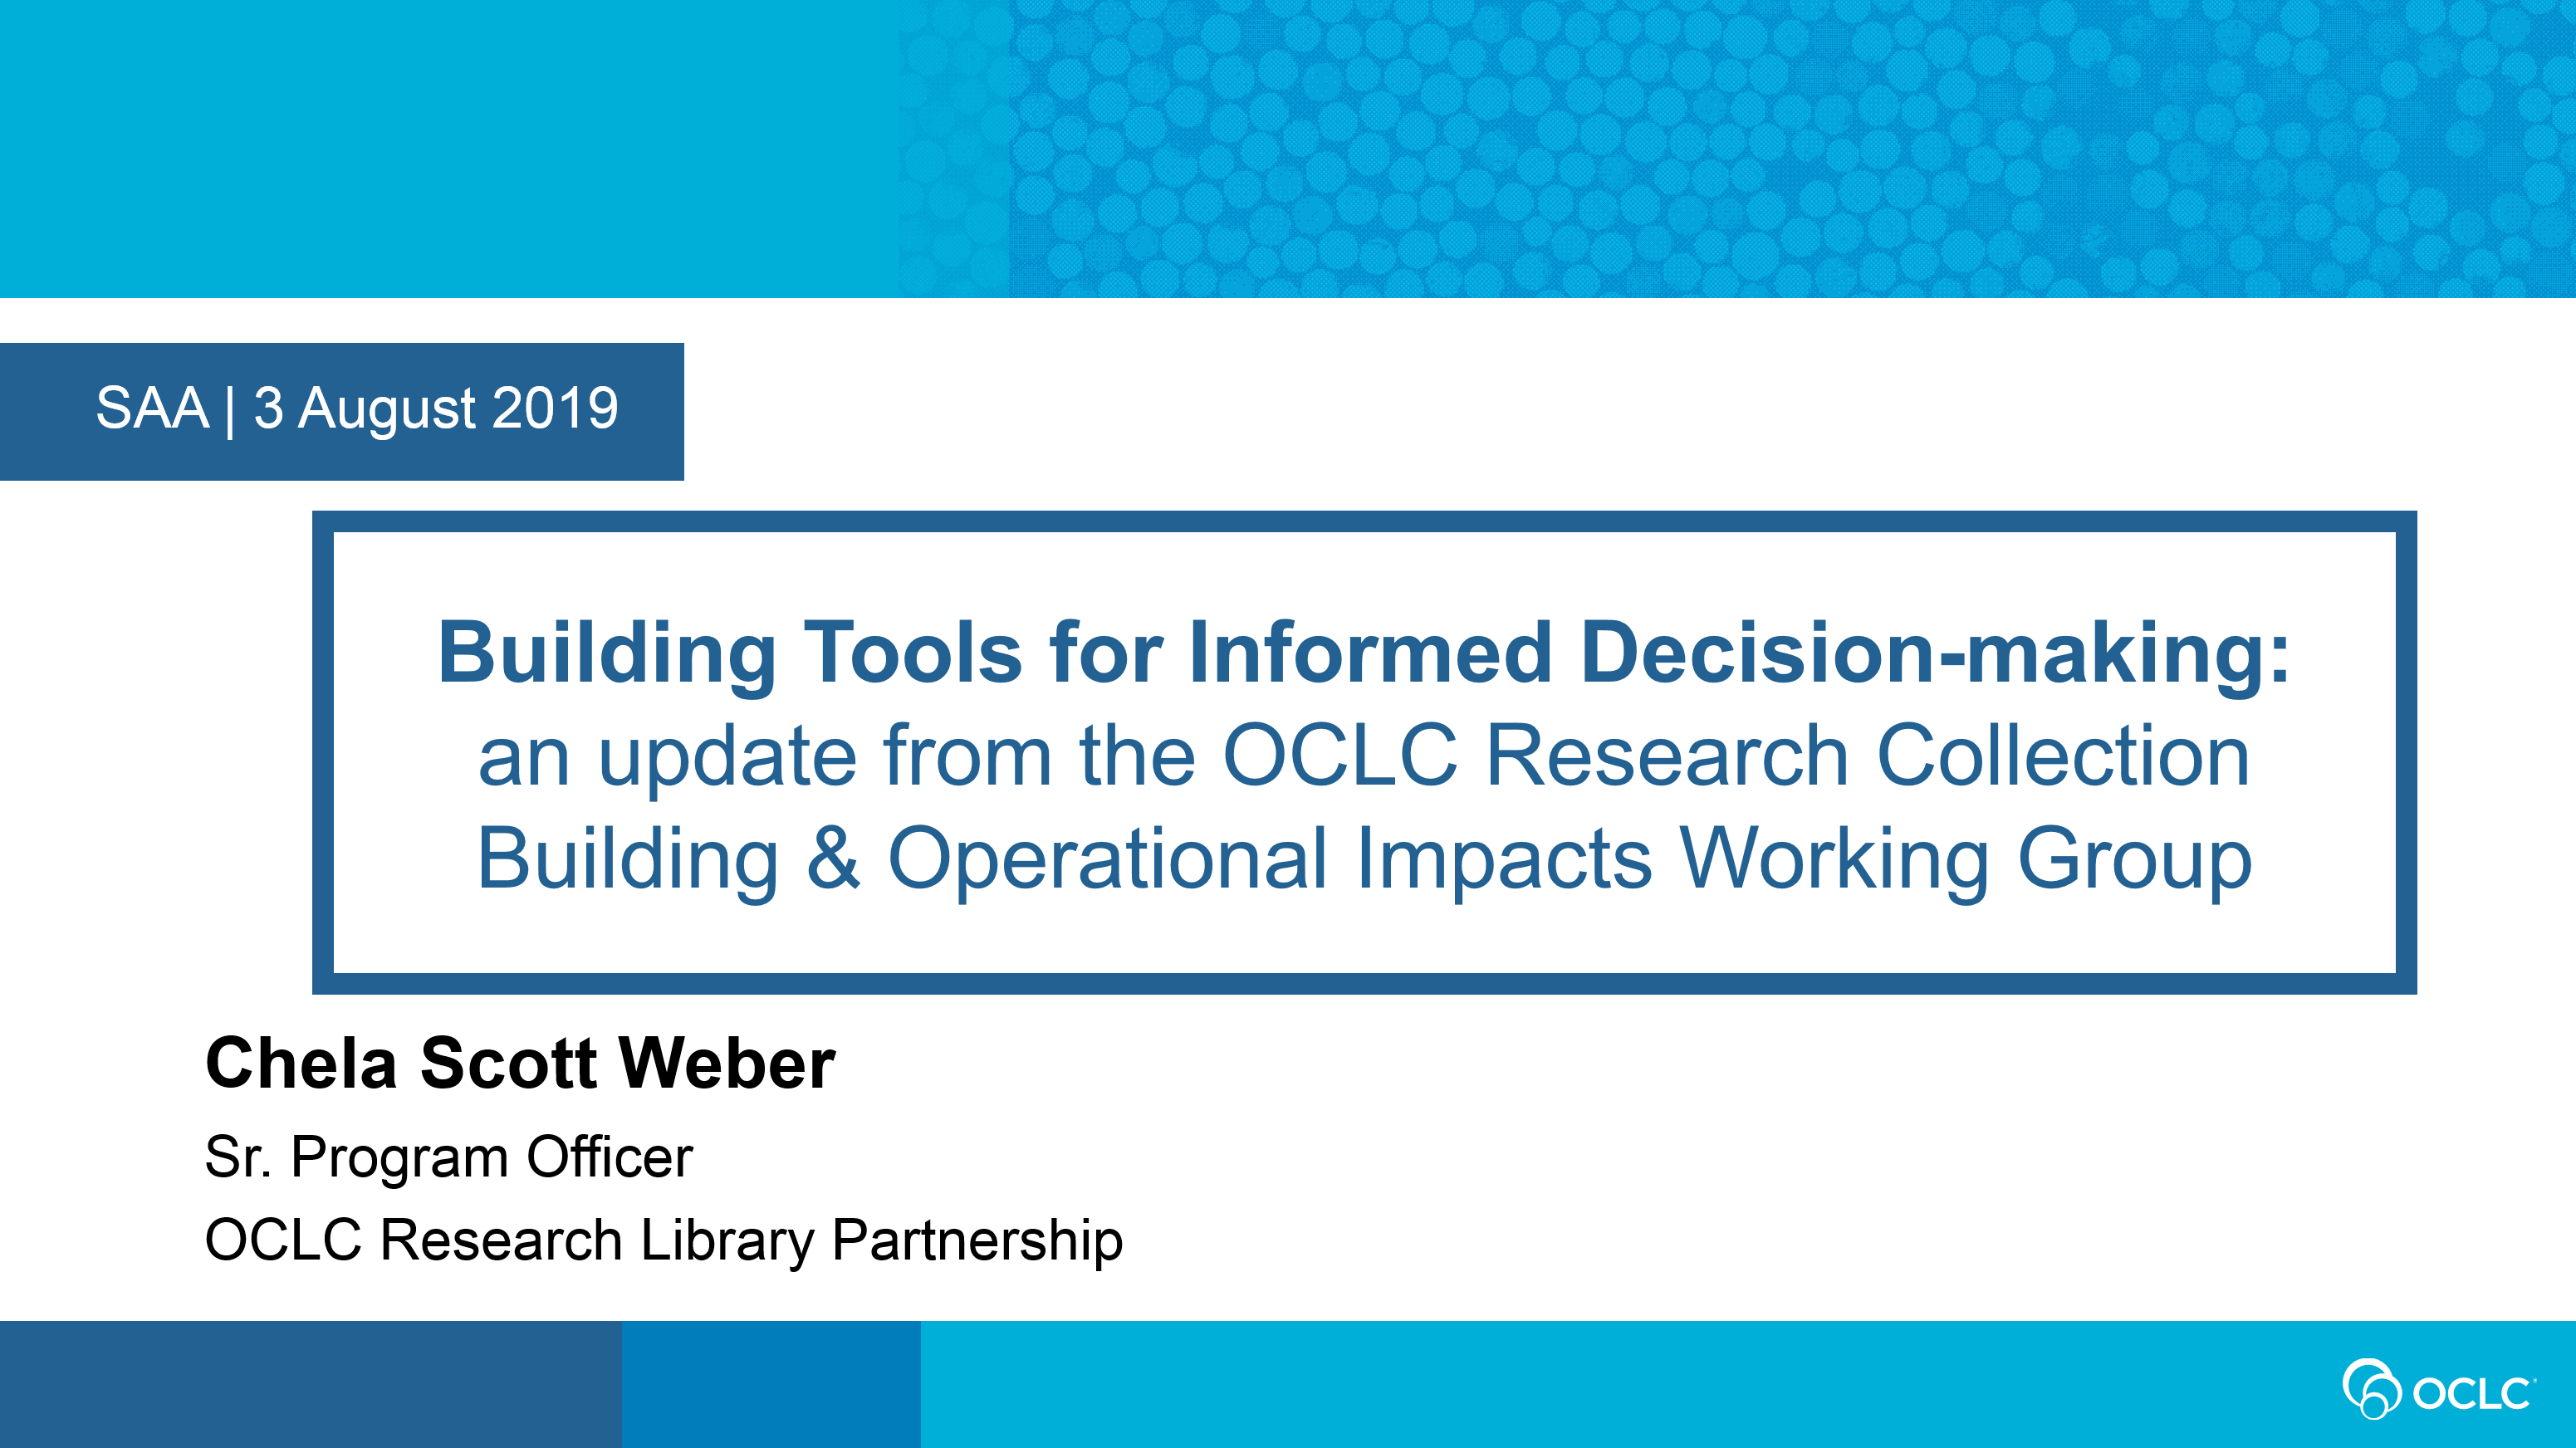 Building Tools for Informed Decision-making: An Update From the OCLC Research Collection Building and Operational Impacts Working Group